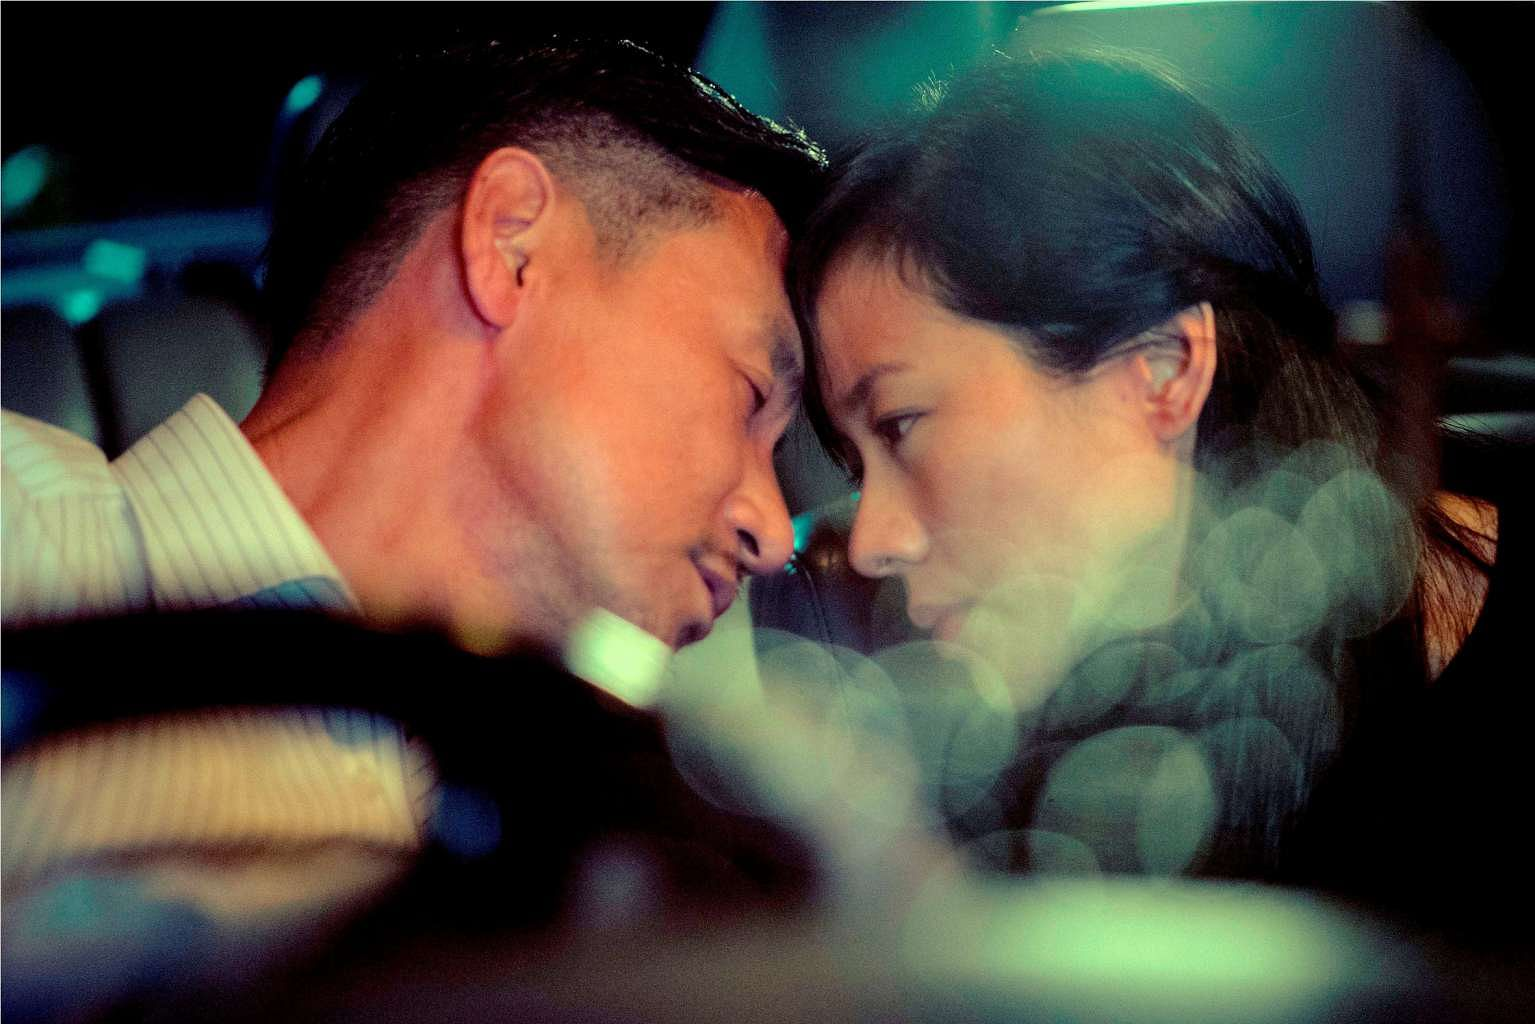 Jacky Cheung And Karena Lam Share Passionate Kiss Under Her Husband S Eyes Entertainment News Top Stories The Straits Times